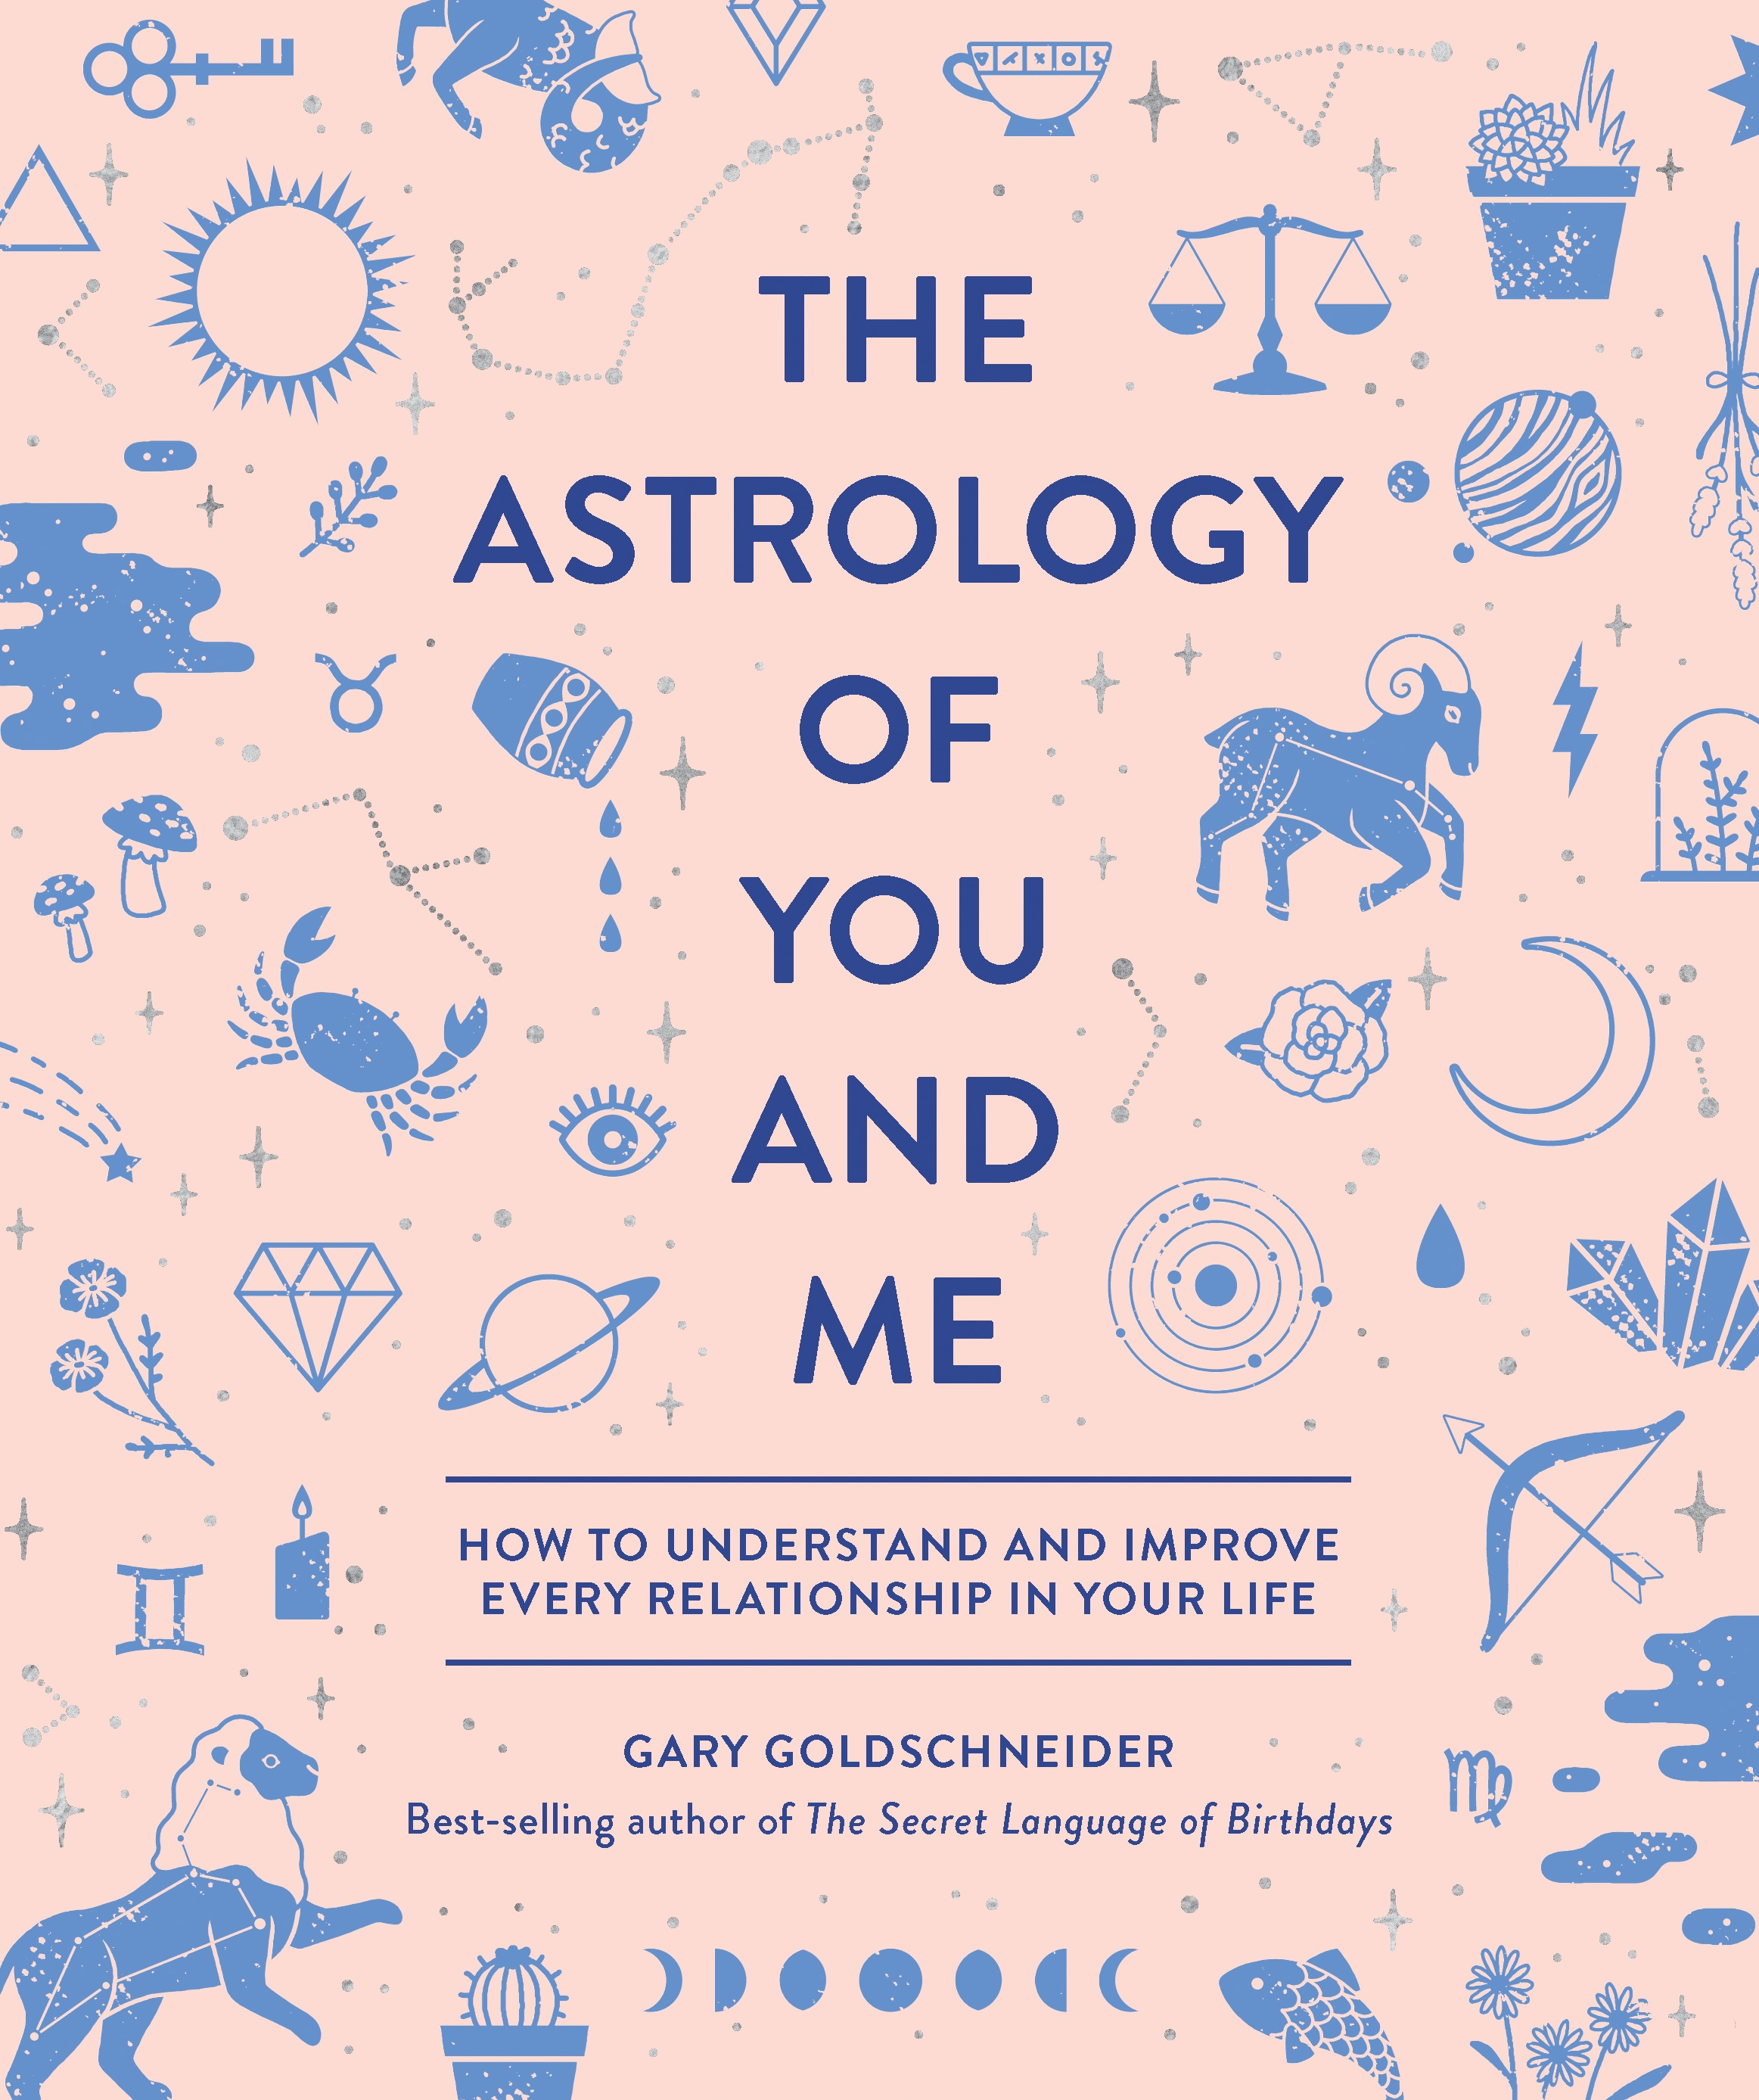 The Astrology of You and Me : How to Understand and Improve Every Relationship in Your Life | Faith & Spirituality